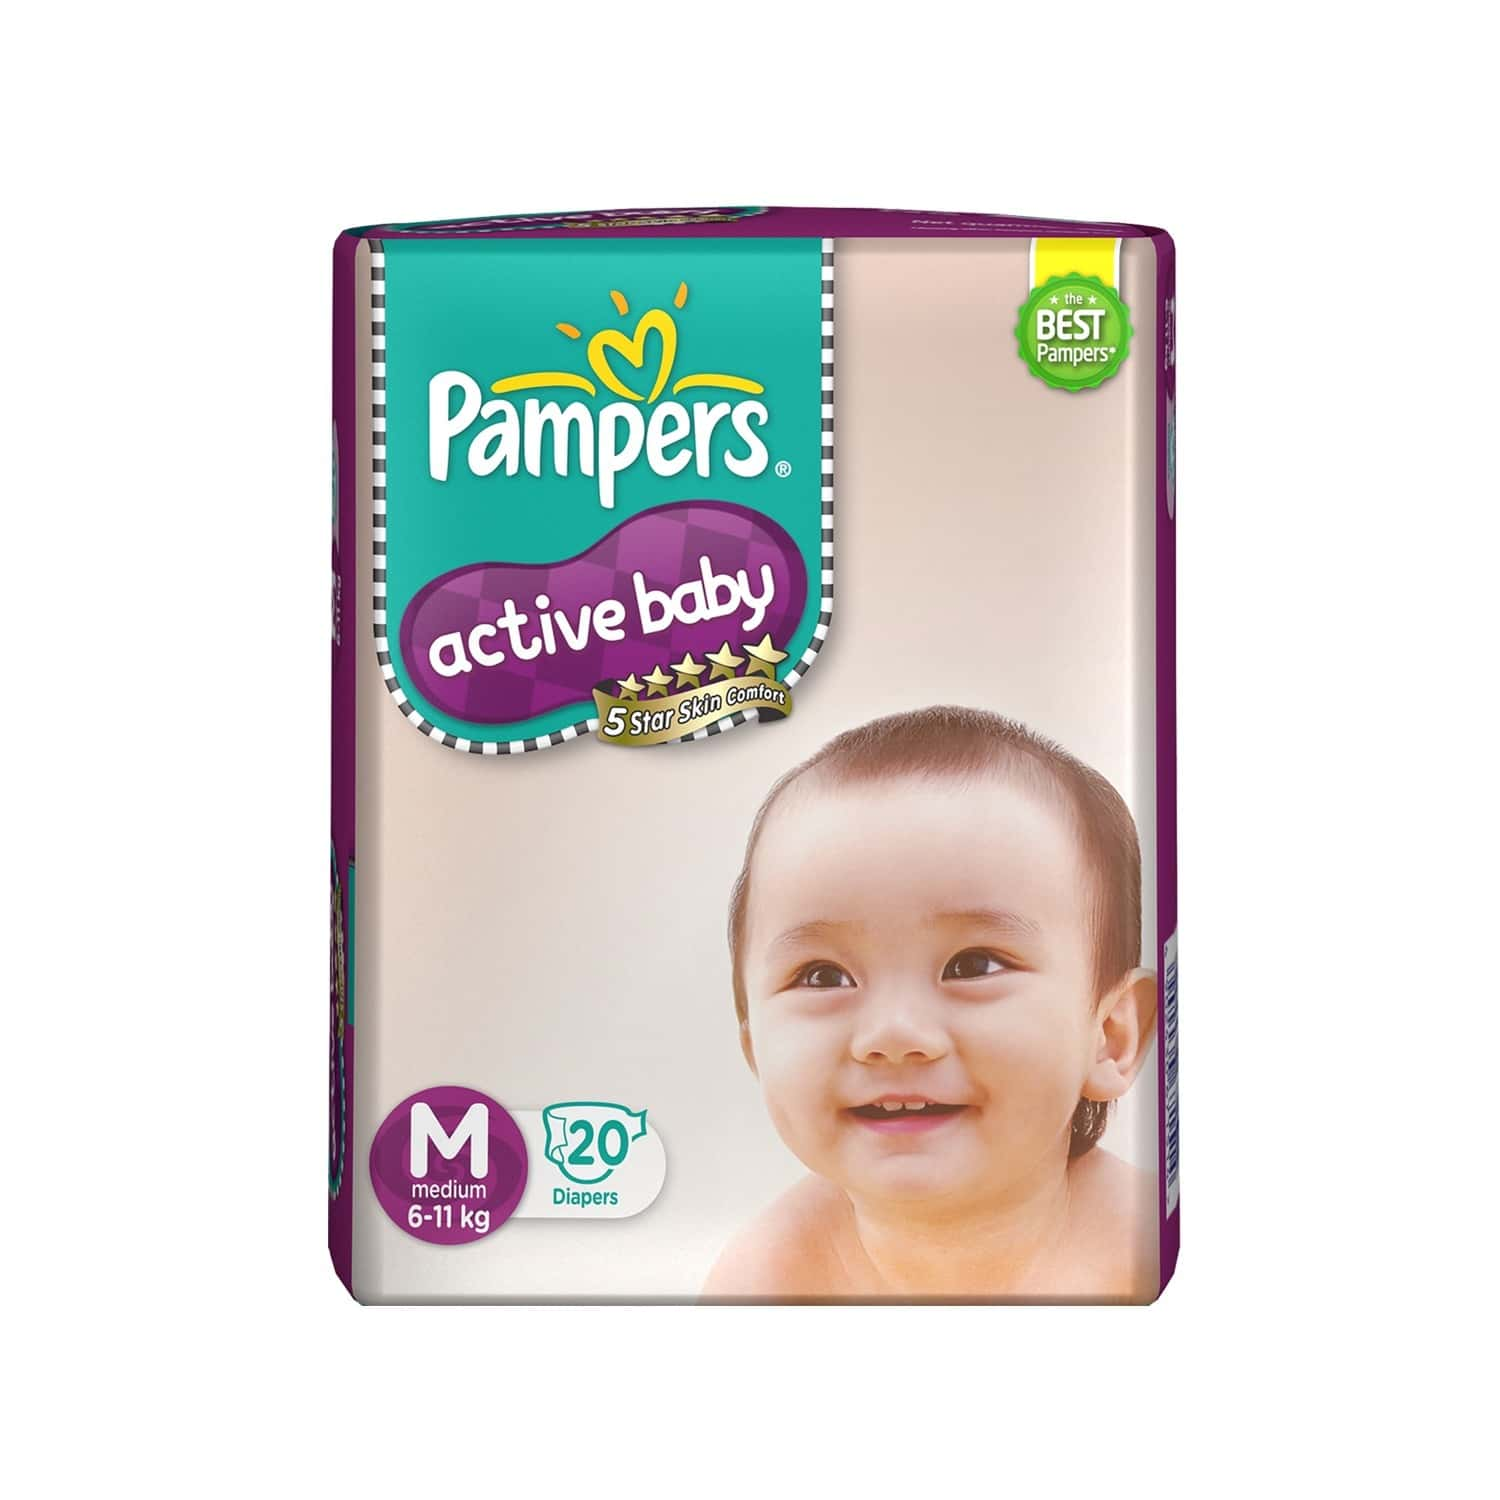 Pampers Active Baby Diaper Size M Packet Of 20